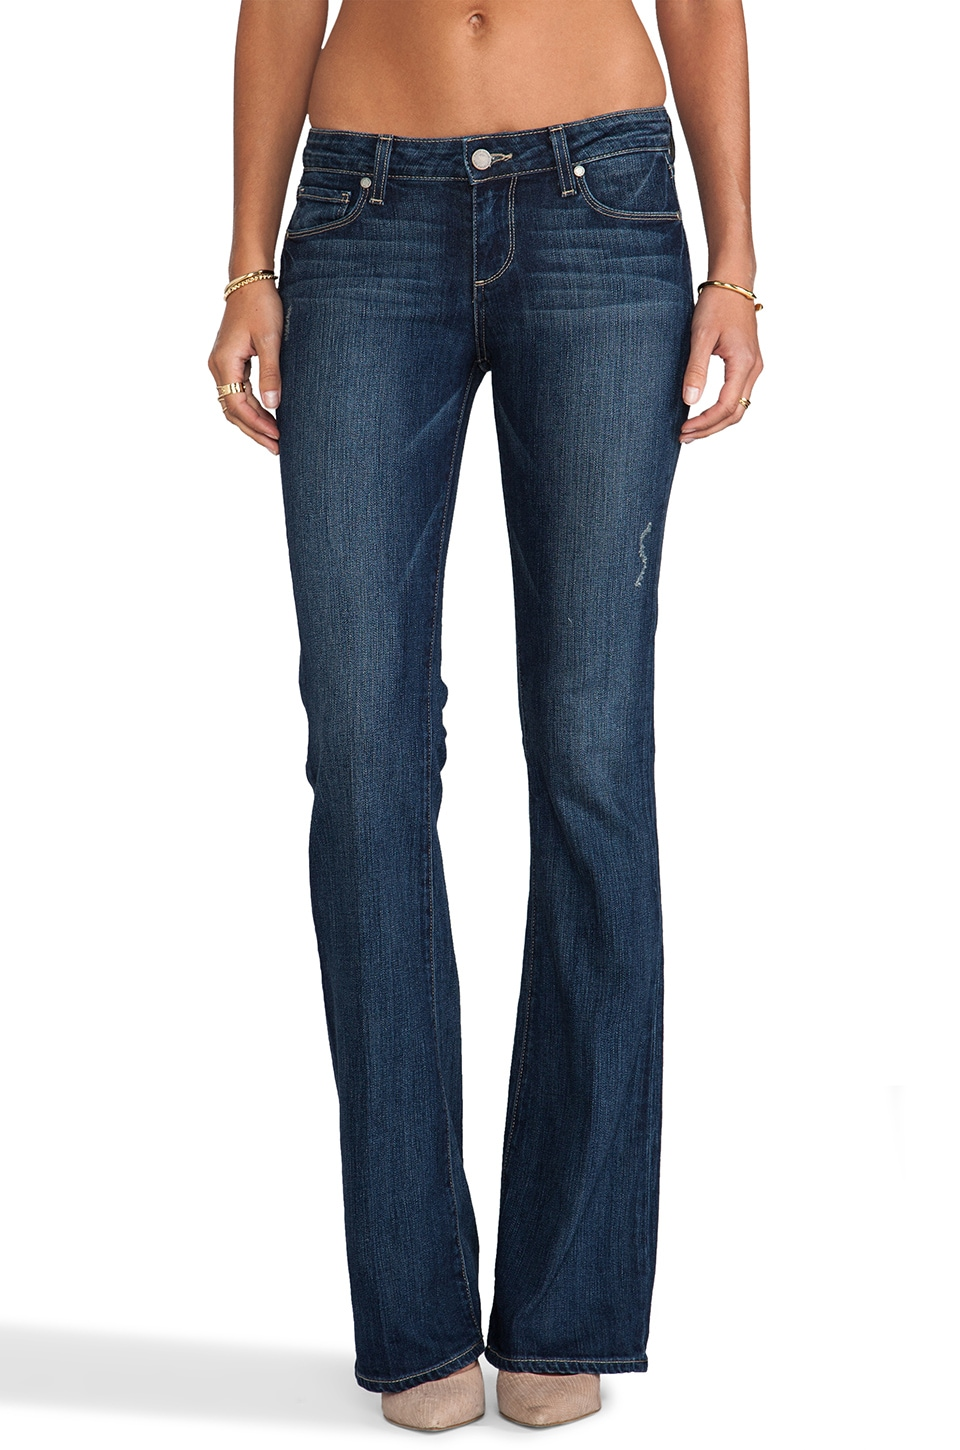 Paige Denim Skyline Boot in Augusta